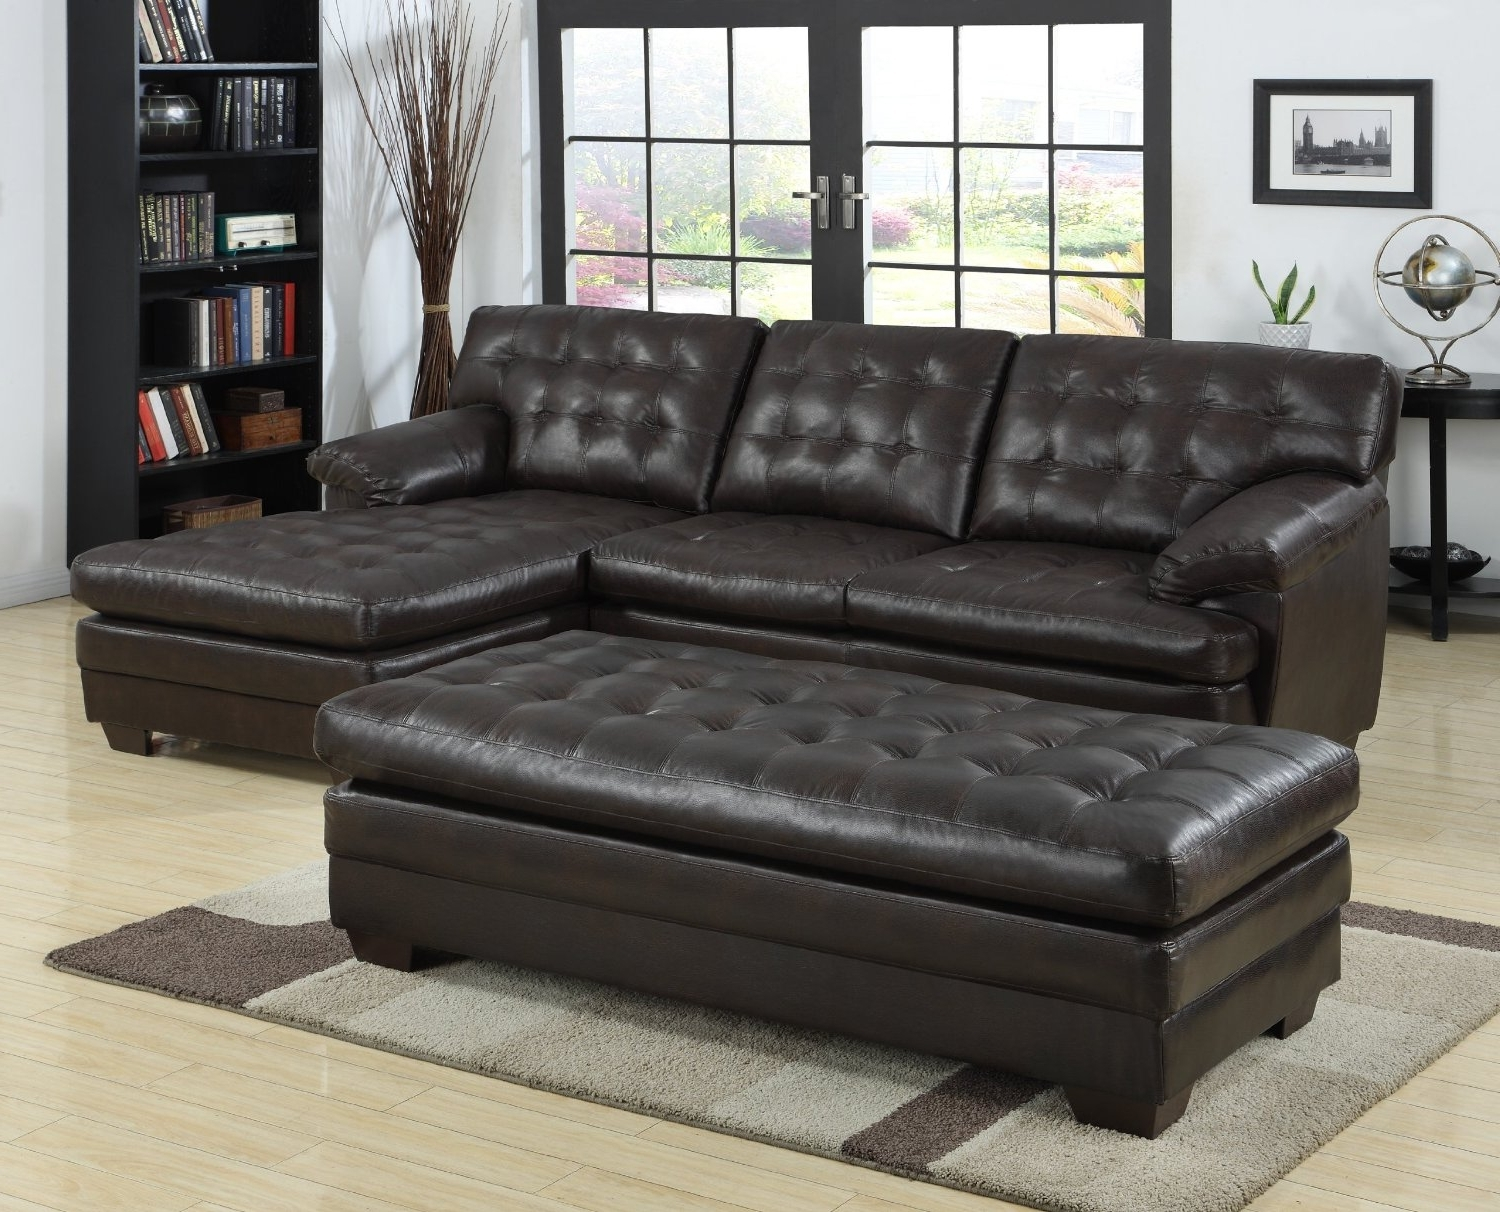 Black Tufted Leather Sectional Sofa With Chaise And Bench Seat With Regard To Popular Leather Sectionals With Chaise And Ottoman (View 9 of 20)